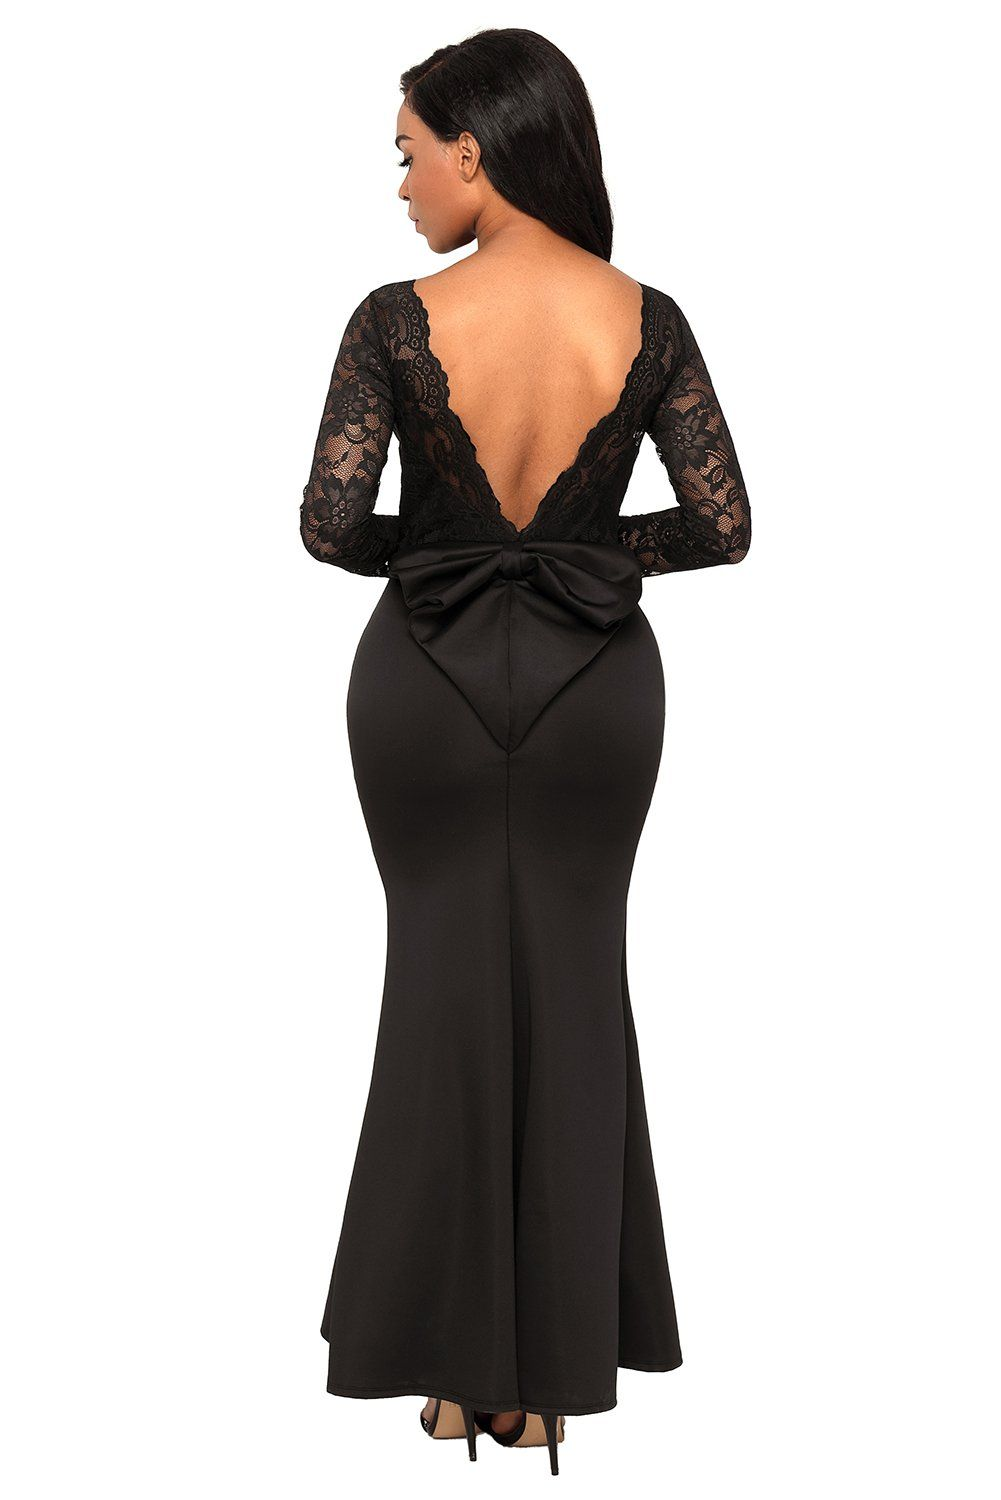 Chase secret womens lace long sleeve bow back elegant evening gown